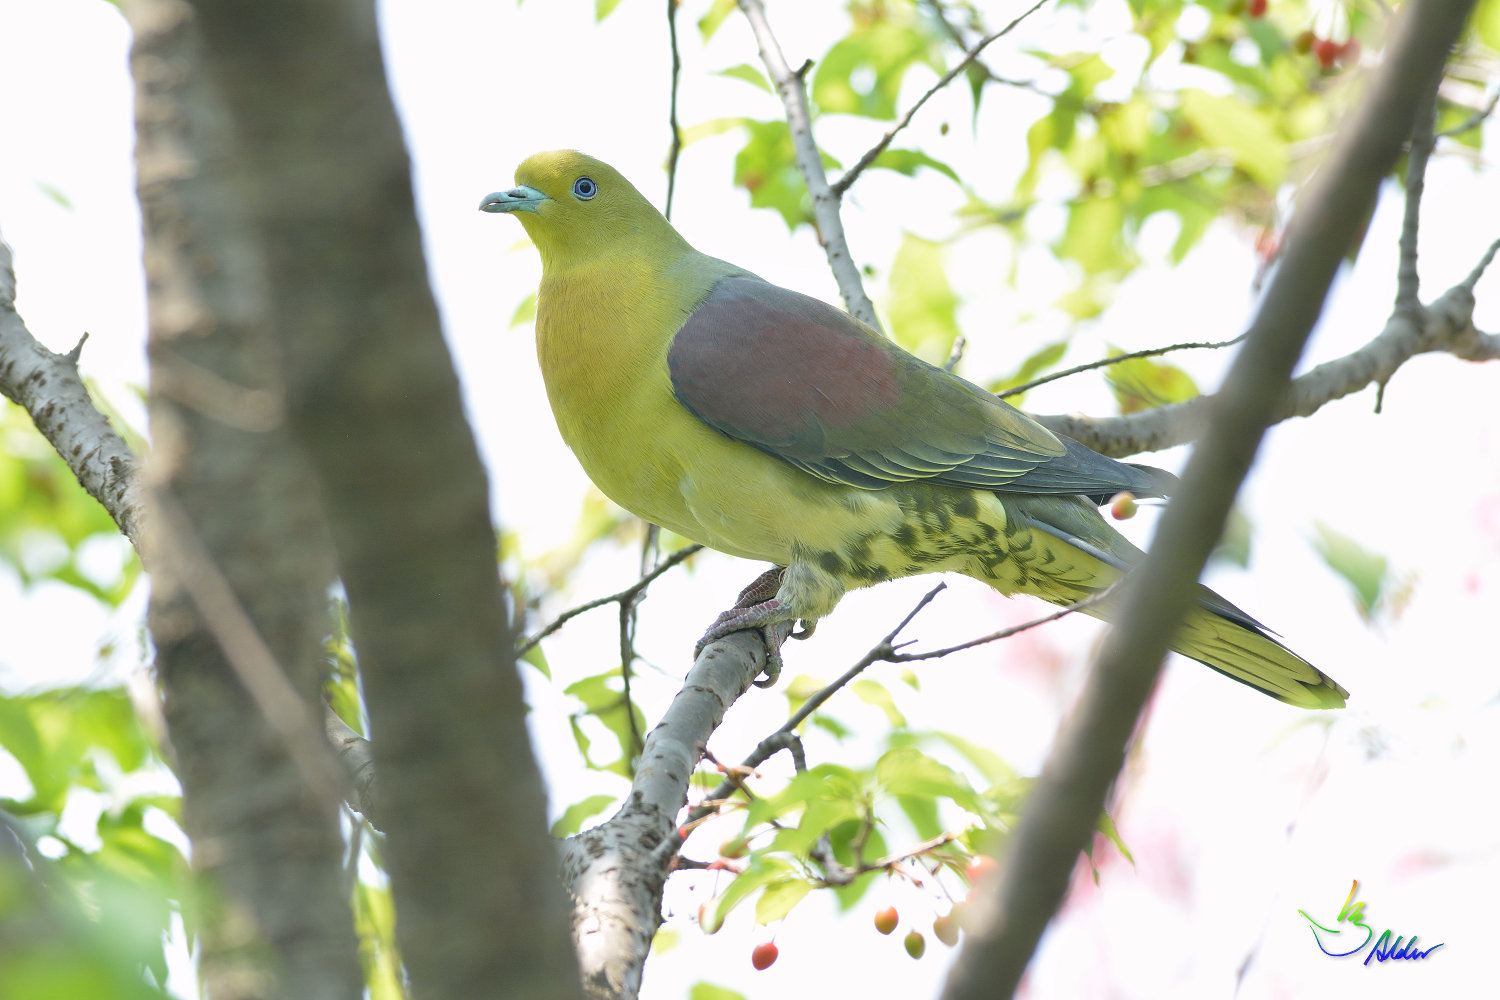 White-bellied_Green_Pigeon_5361